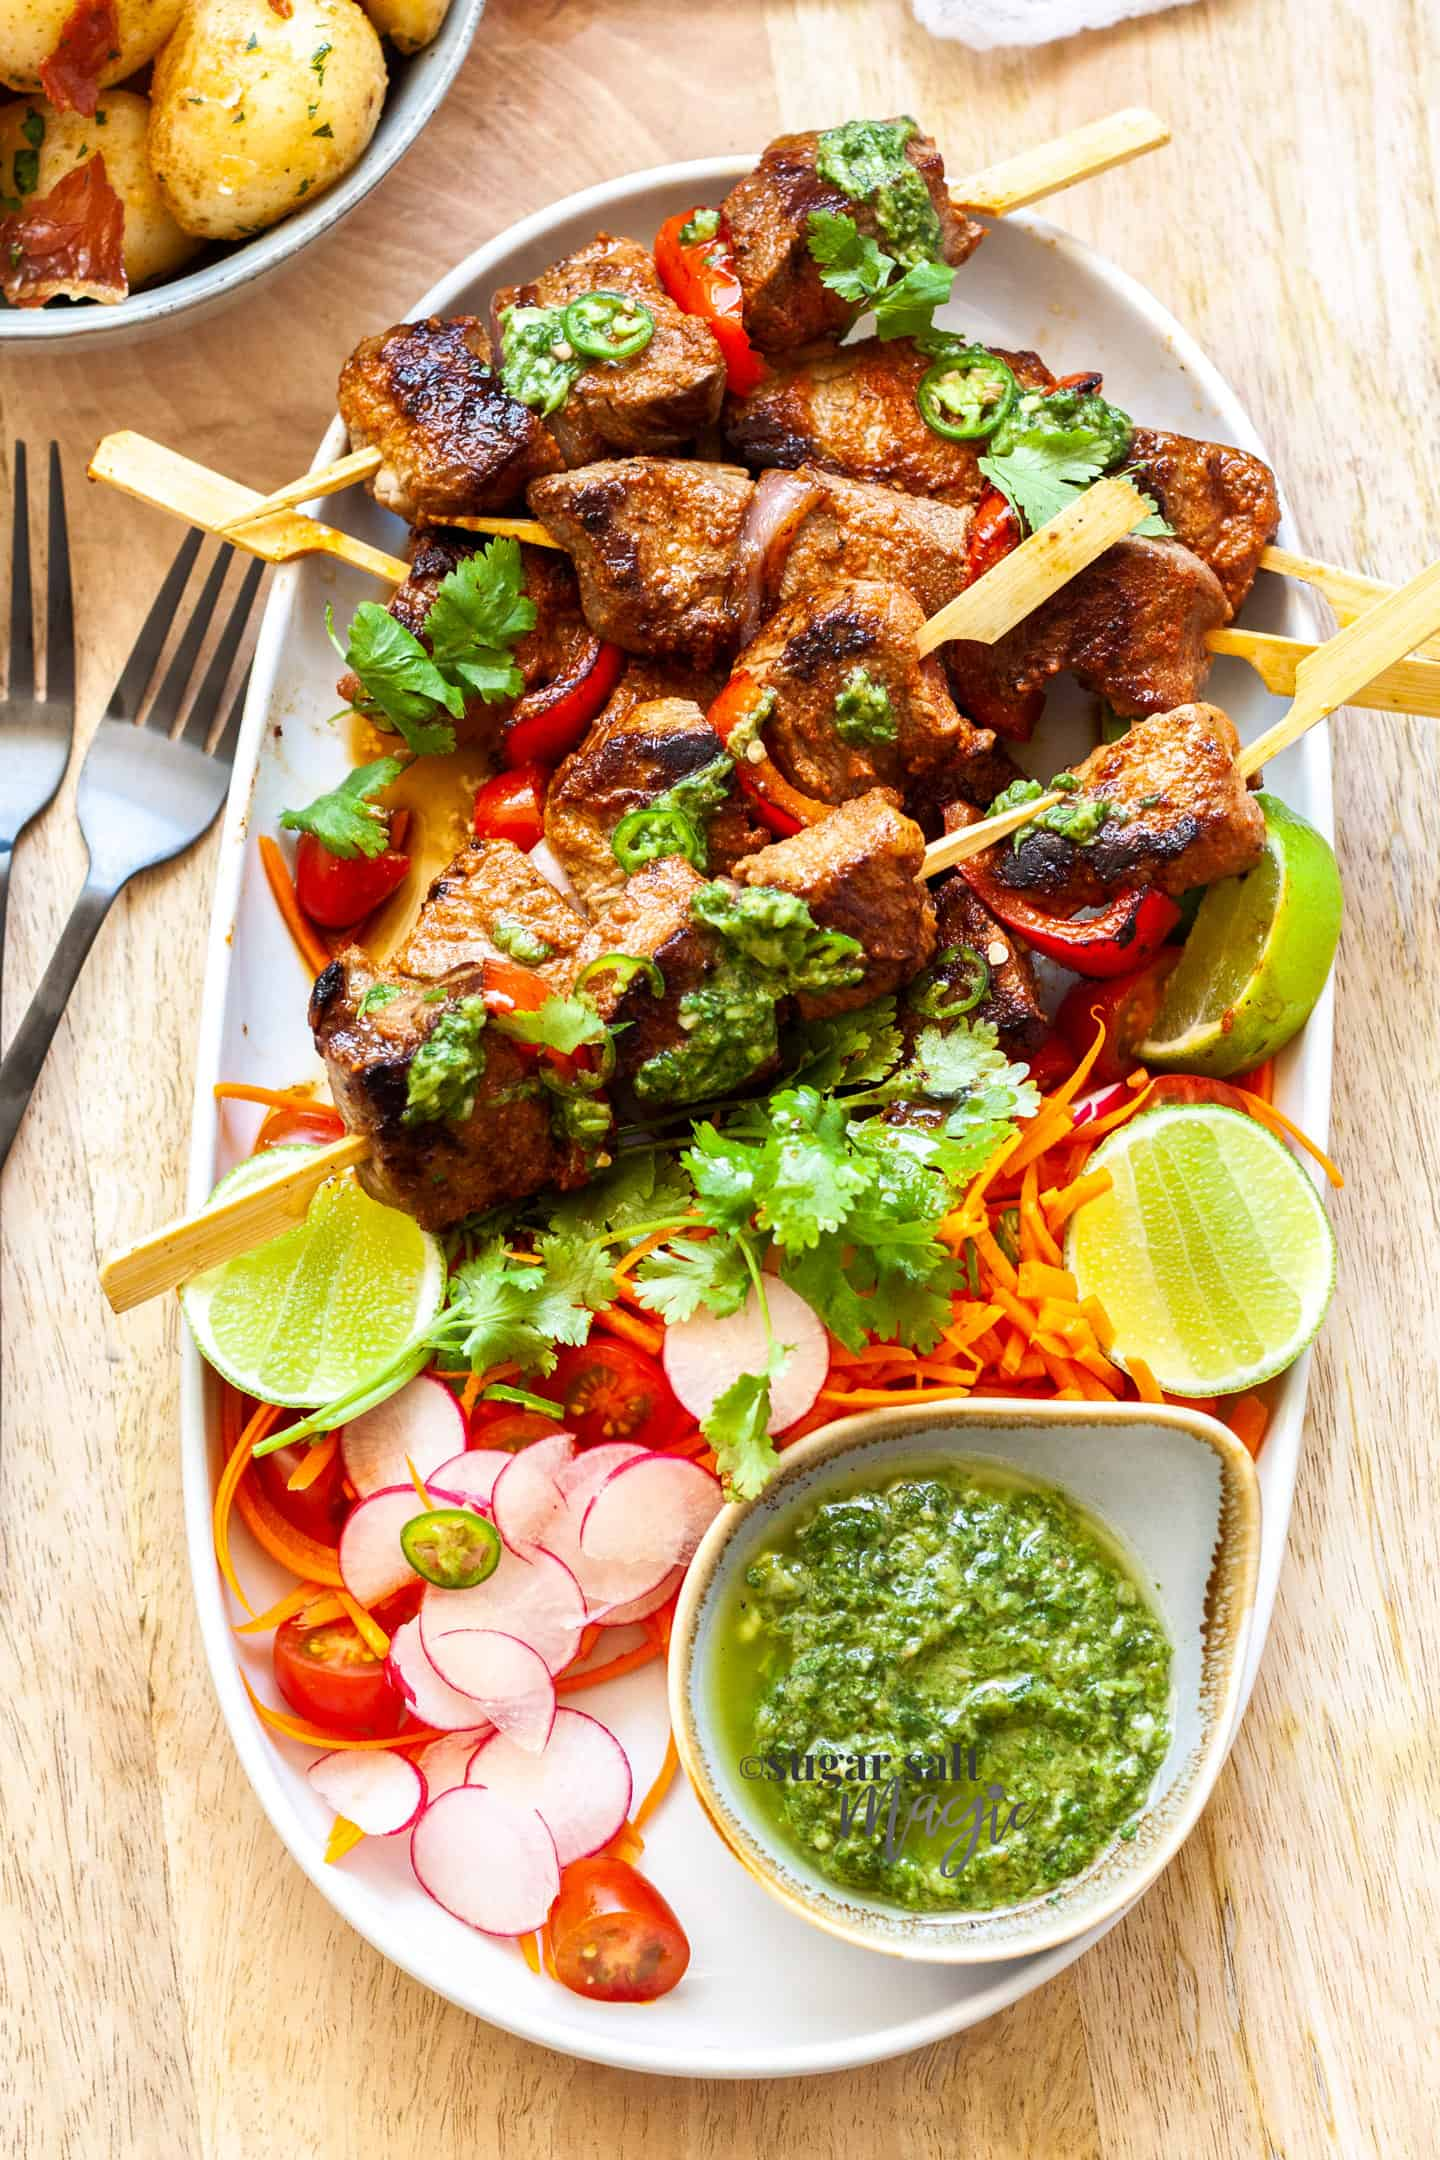 An oval dish filled with salad and steak kabobs with a green sauce.